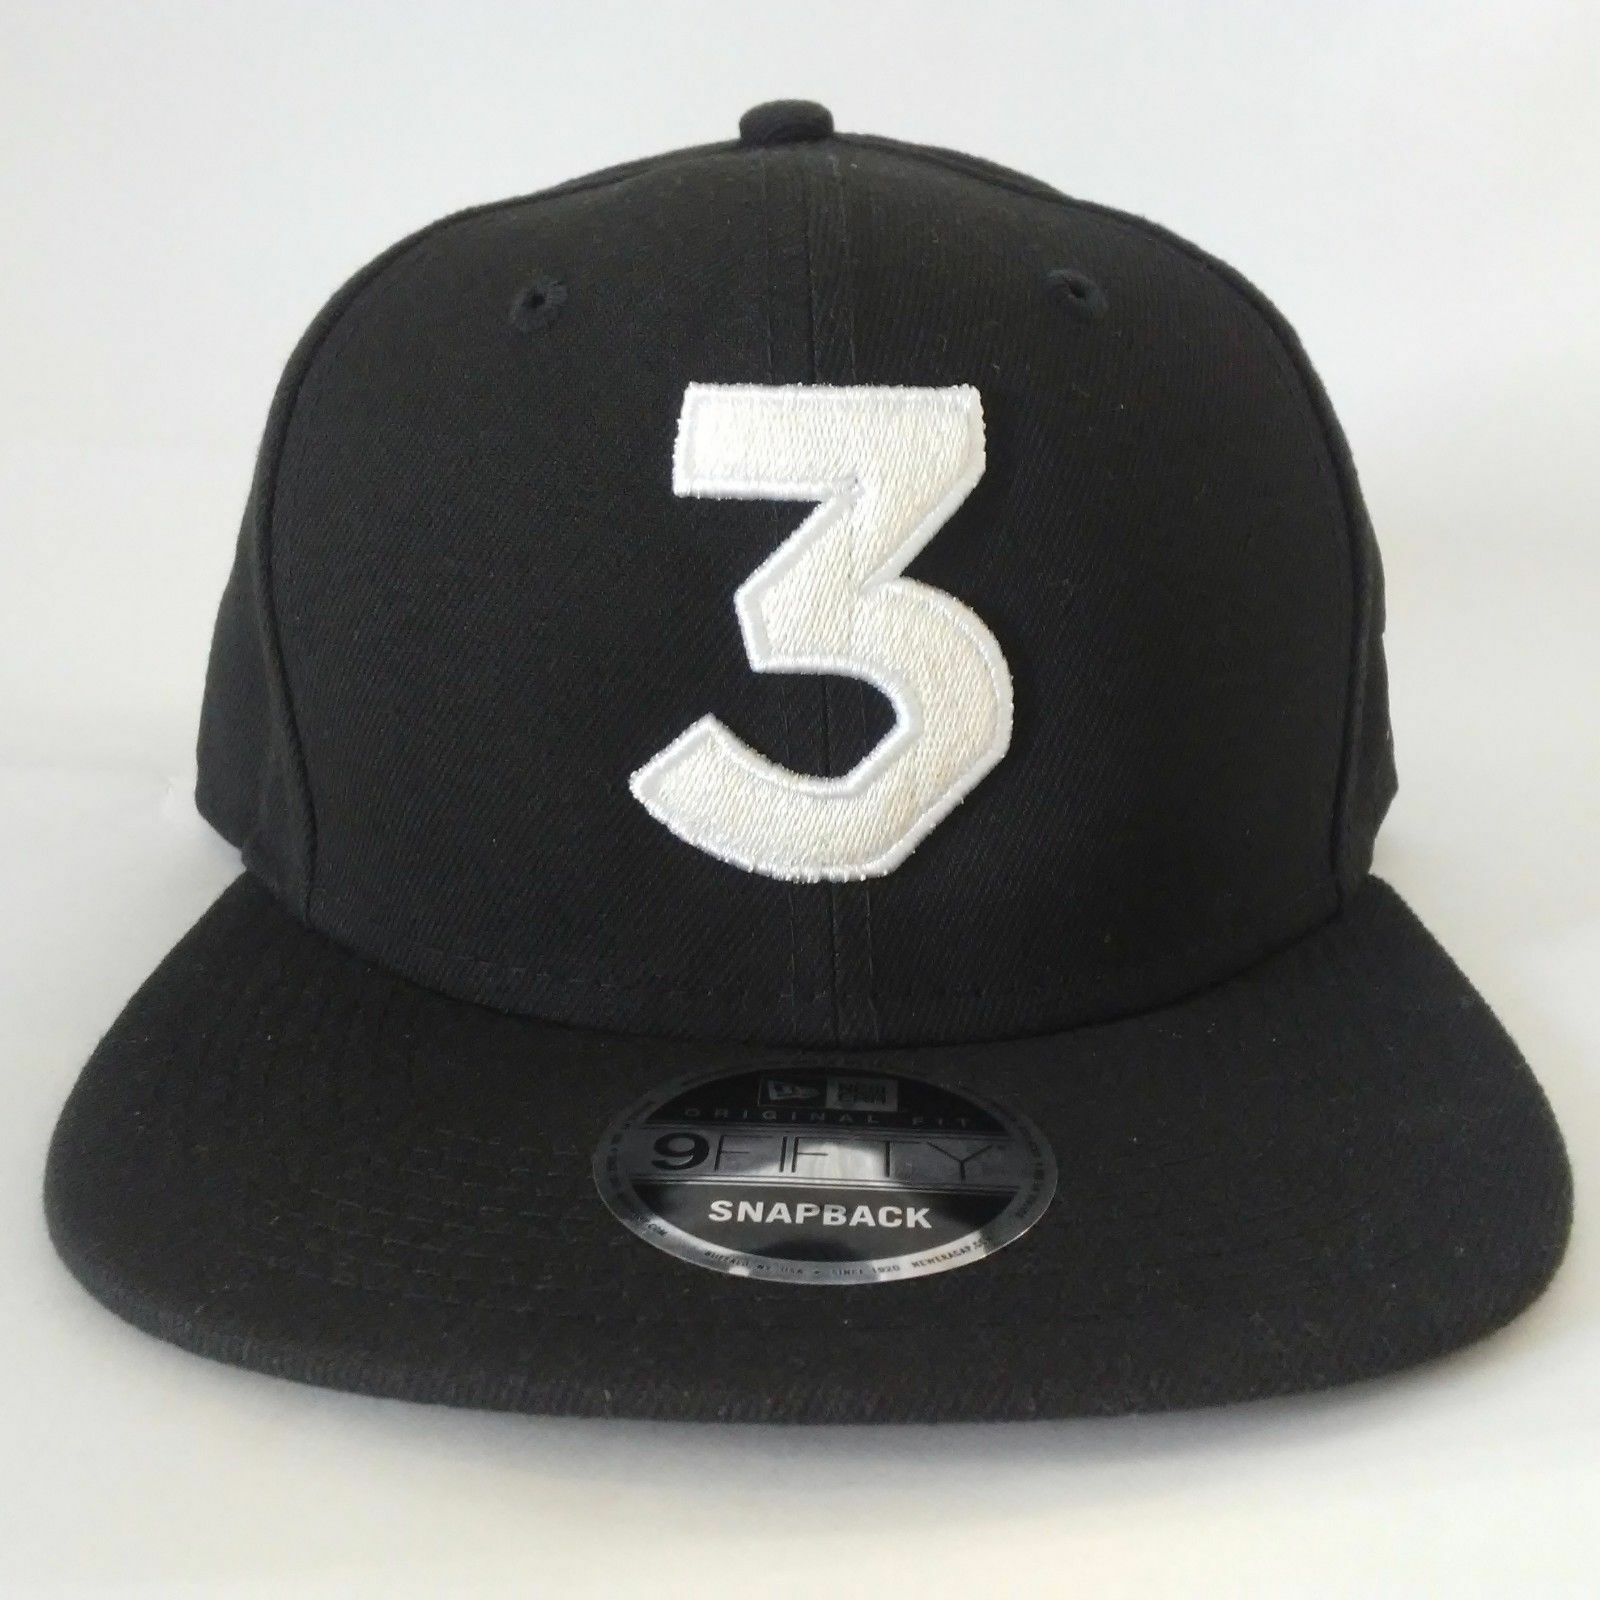 Buy Chance The Rapper 3 Era Cap Snapback Hat (black) online  6a7437dc5d8